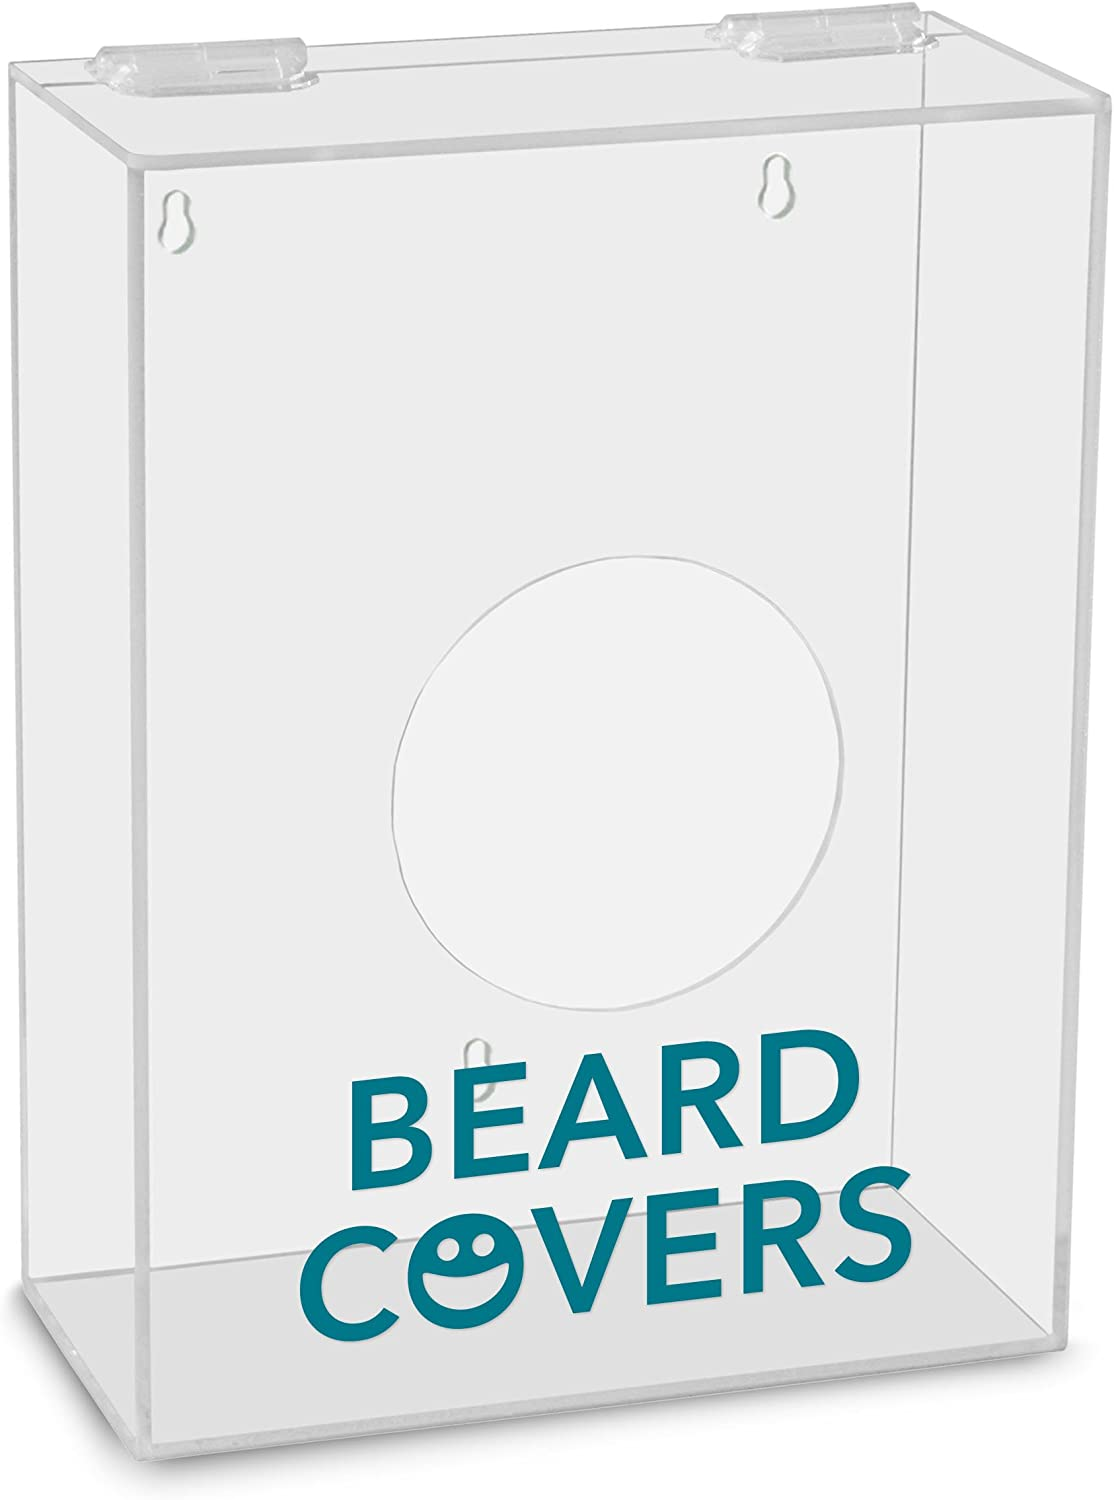 TrippNT 51304 Beard Covers Labeled Small Apparel Dispenser, 9  Width x 12  Height x 4  Depth